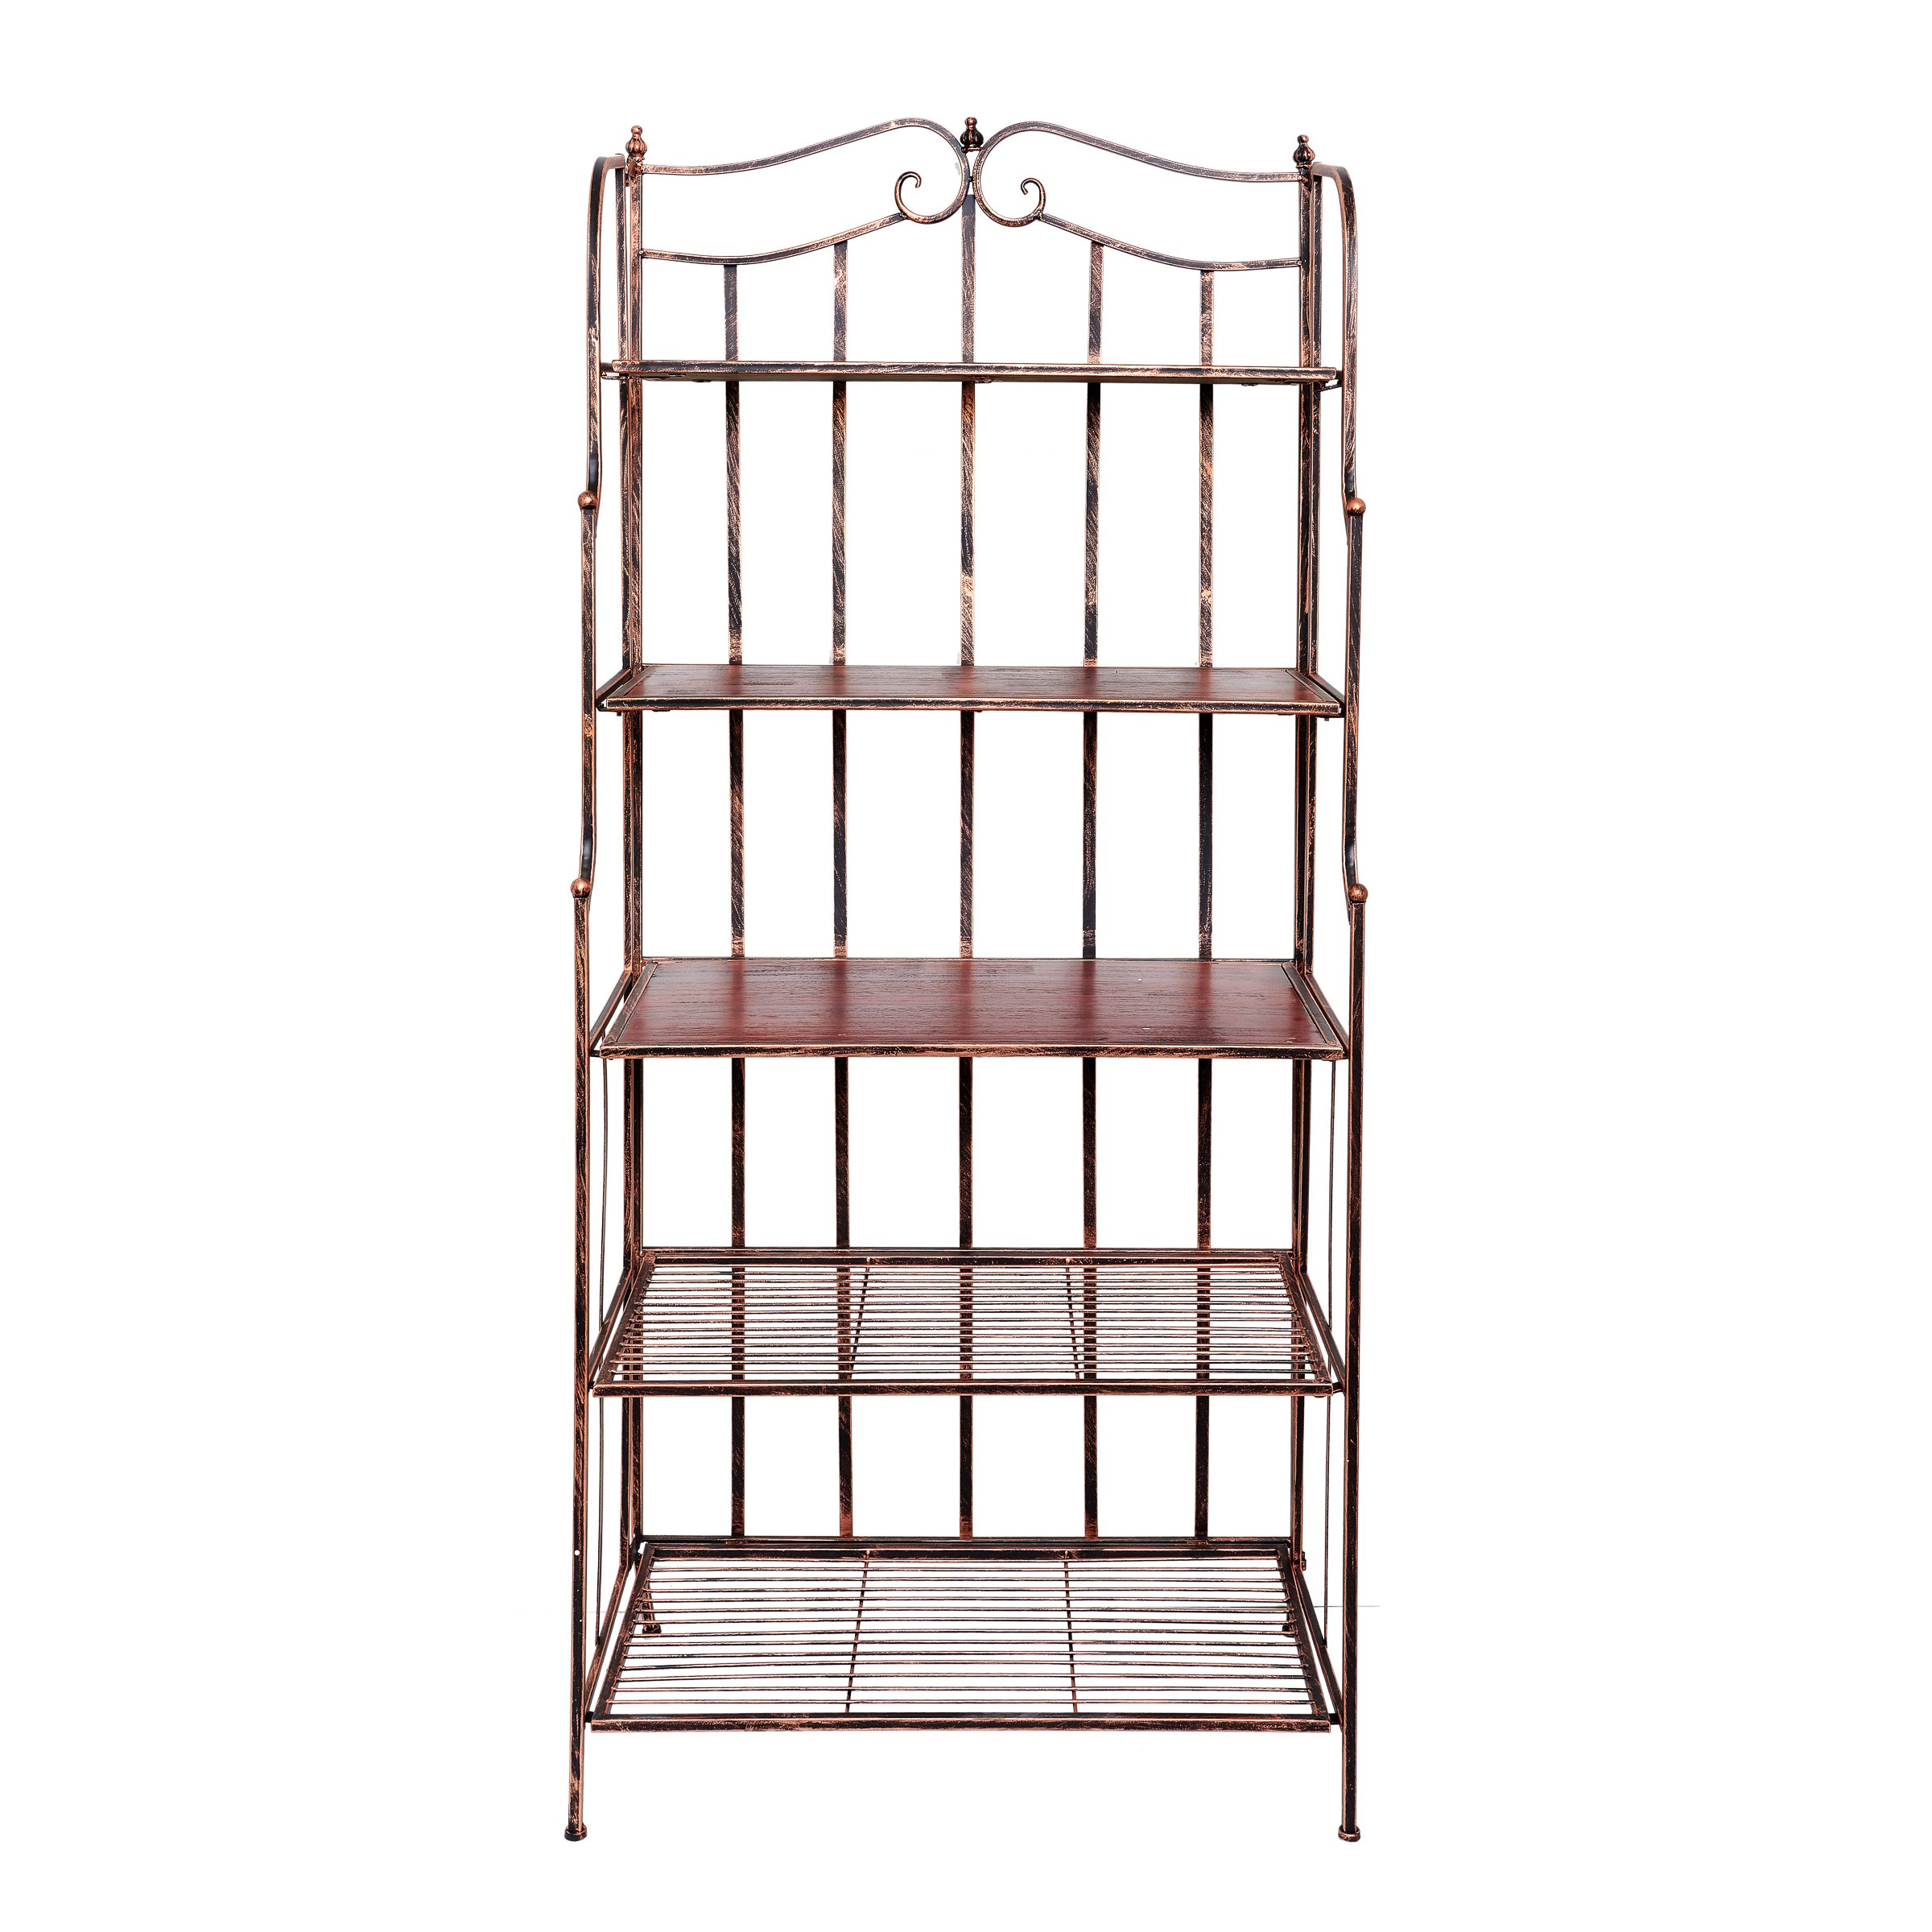 Old Dutch 611BC Montclair Bakers Rack, 30'' x 16'' x 67.25'', Antique Copper and Rosewood